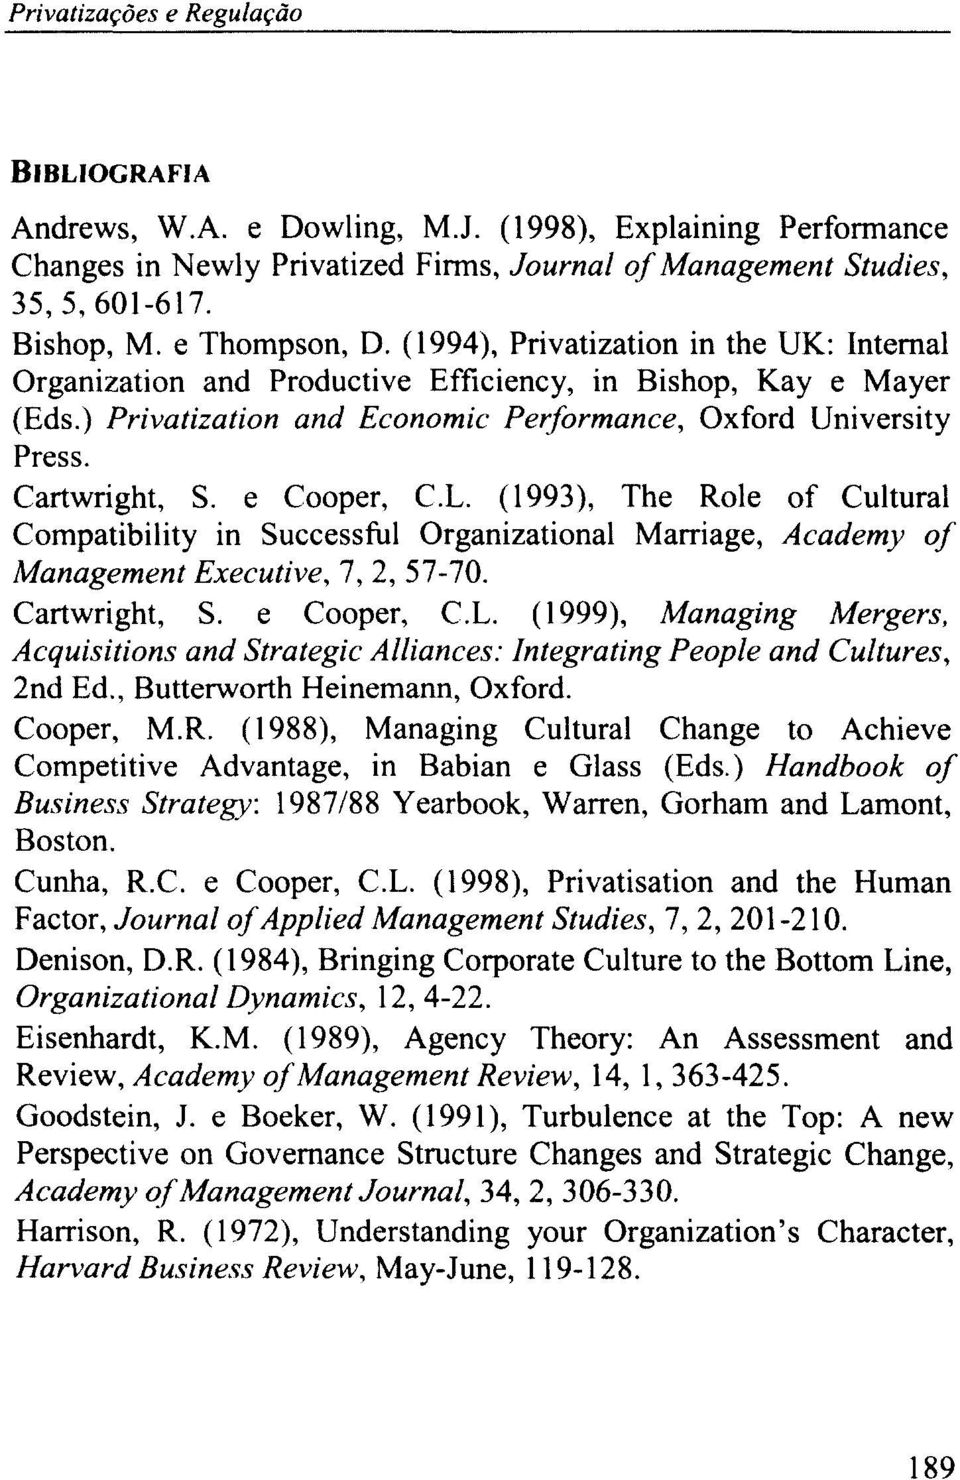 e Cooper, C.L. (1993), The Role of Cultural Compatibility in Successful Organizational Marriage, Academy of Management Executive, 7,2,57-70. Cartwright, S. e Cooper, C.L. (1999), Managing Mergers, Acquisitions and Strategic Alliances: Integrating People and Cultures, 2nd Ed.